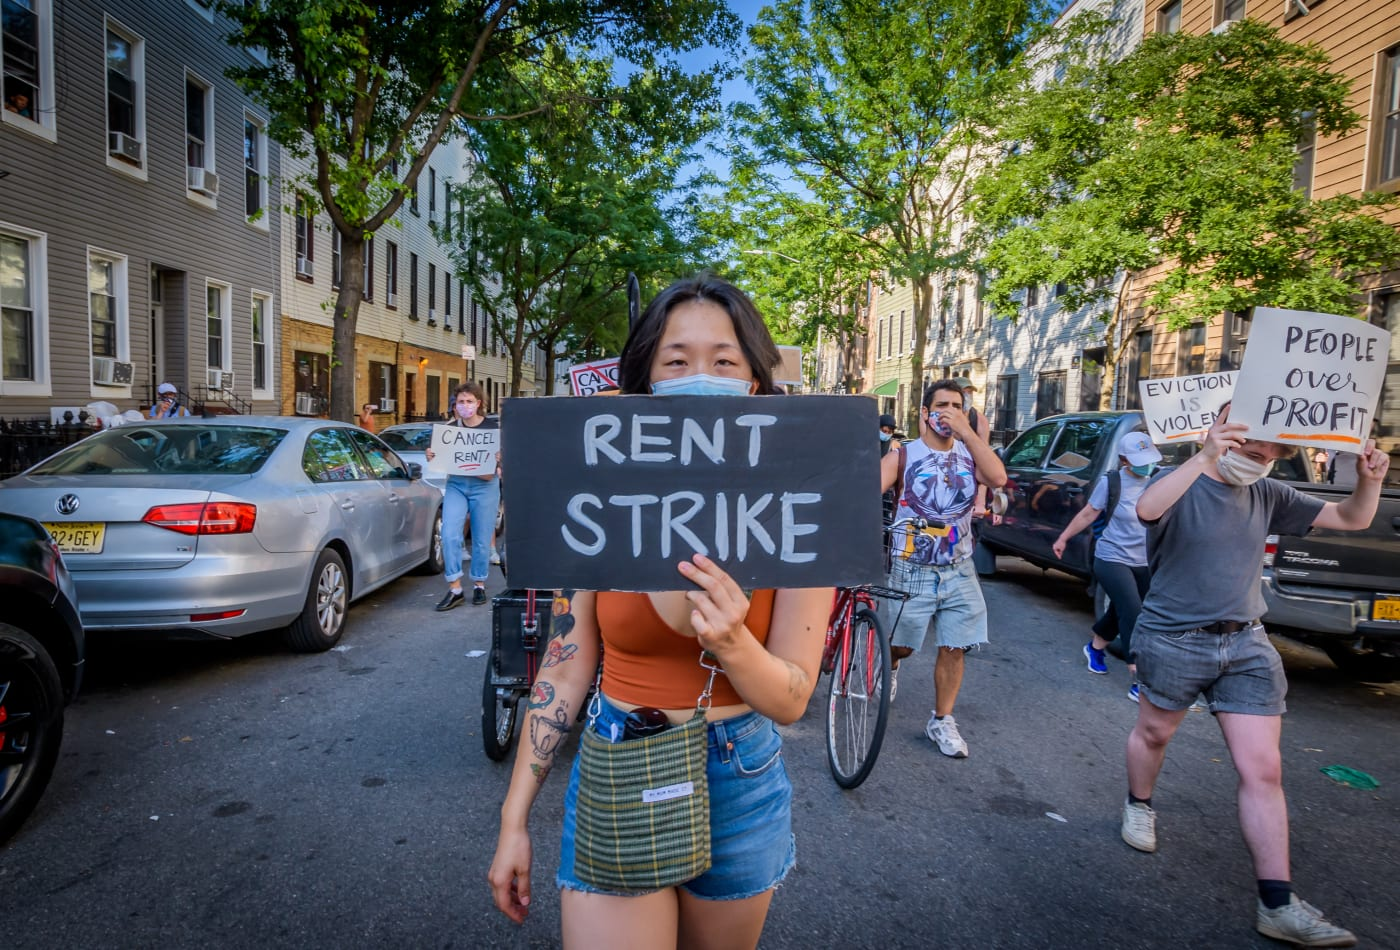 Image of woman holding up a rent strike sign in demonstration